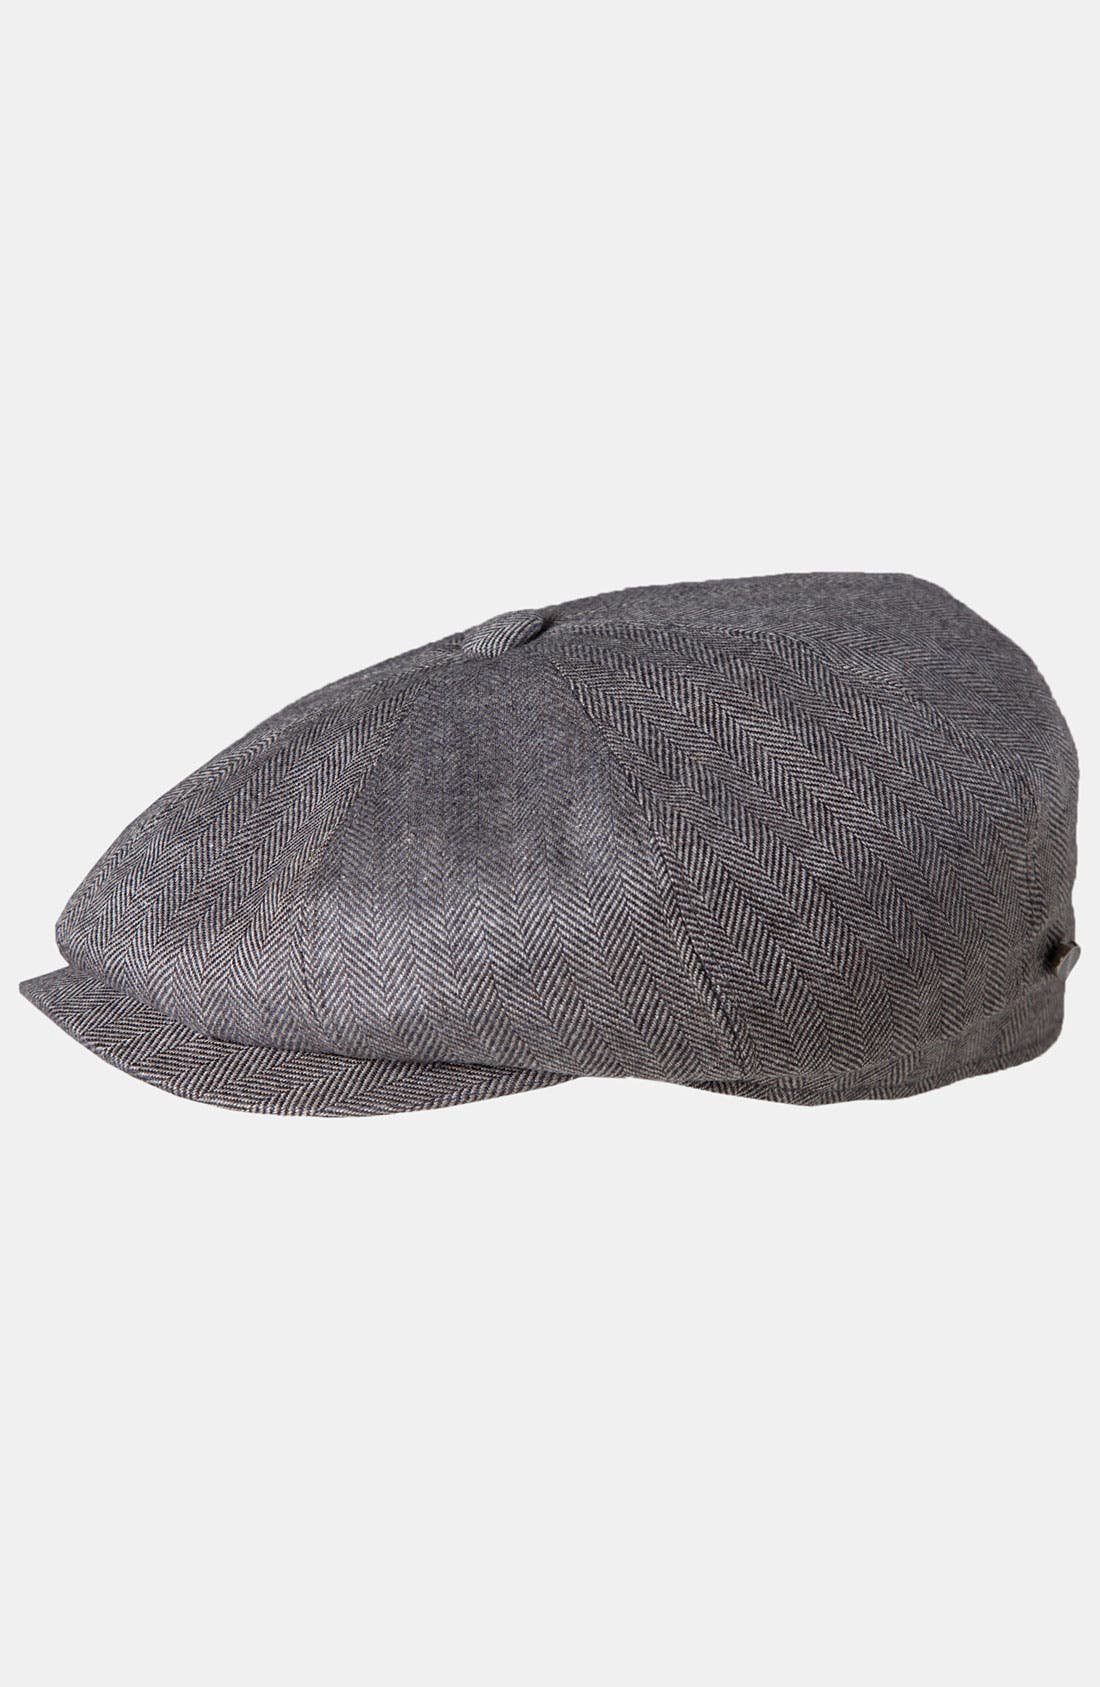 Alternate Image 1 Selected - Stetson Driving Cap